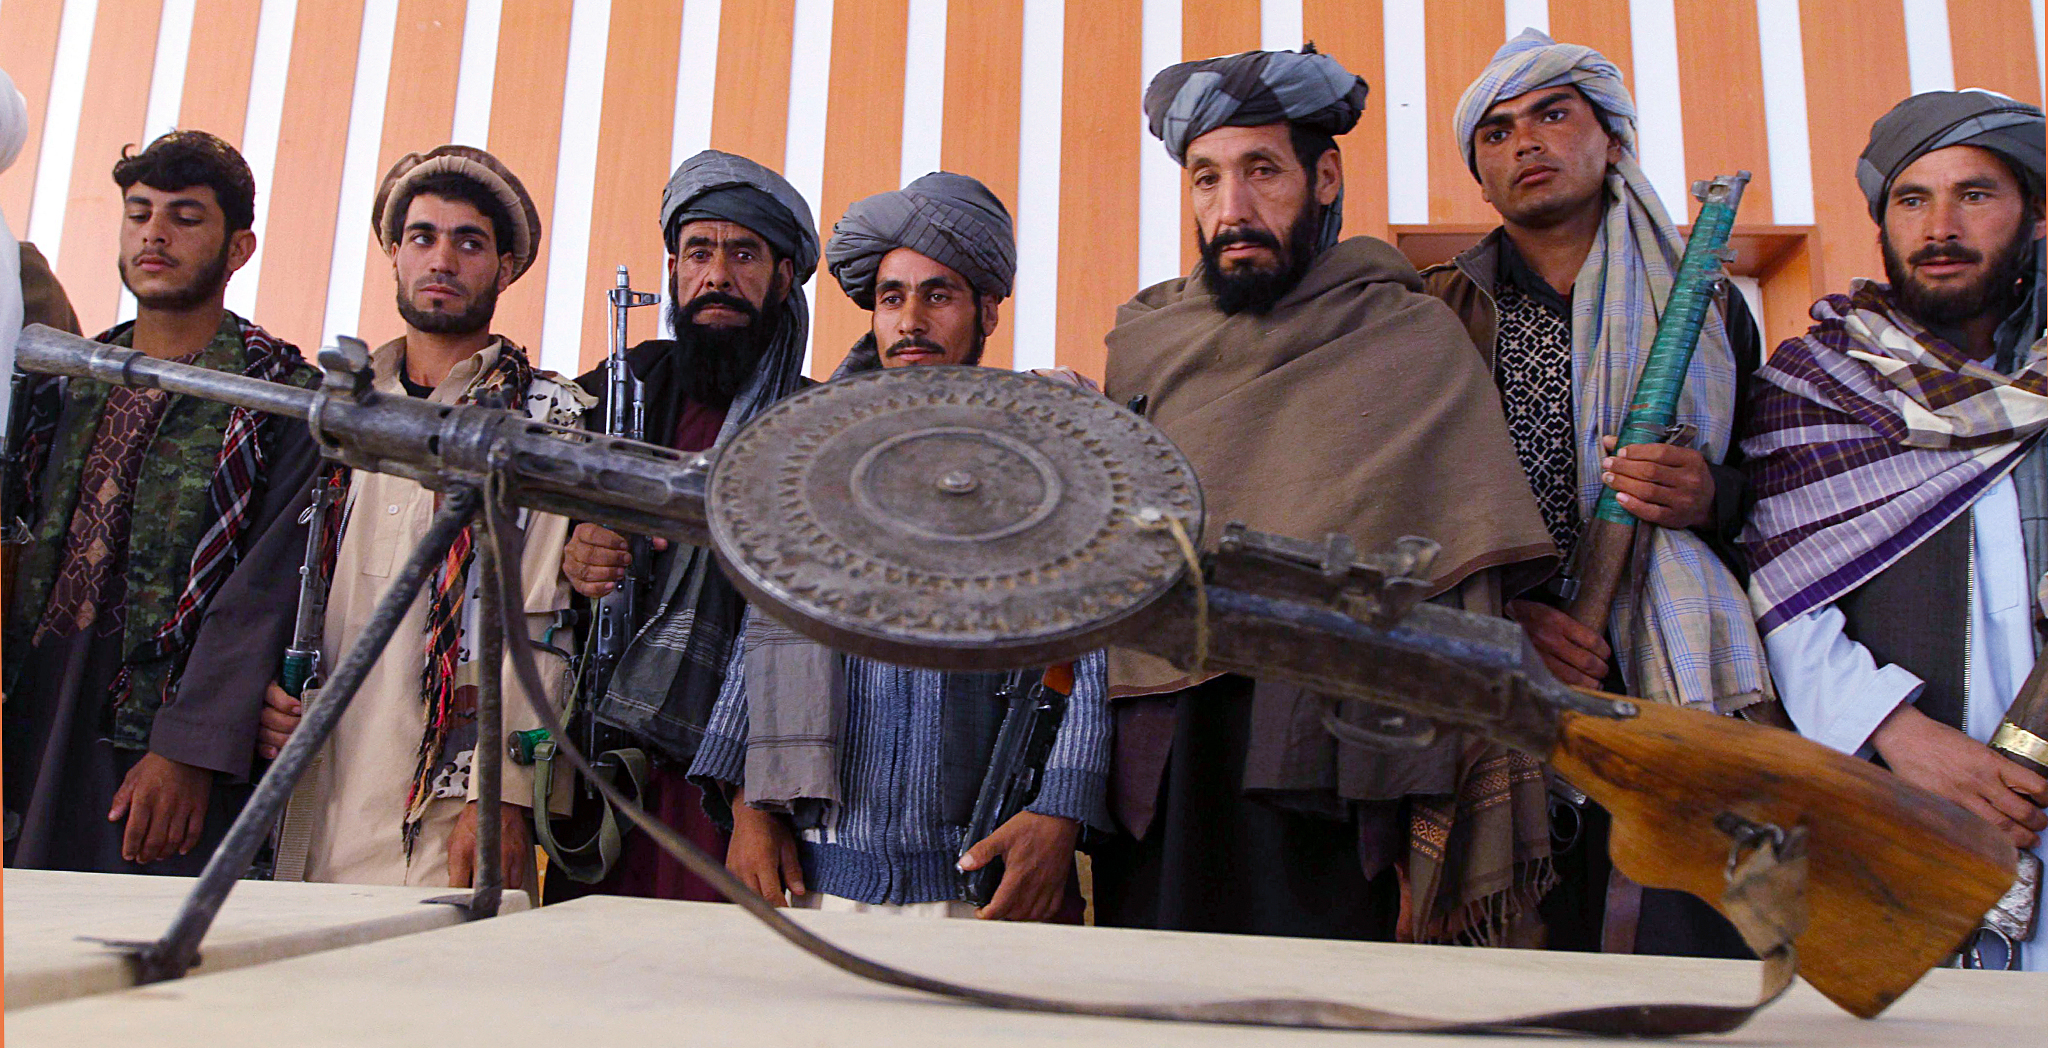 Taliban militants surrender their weapons in Herat...epa03920206 Former Taliban militants stand behind an rusty old light machine gun as they surrender their weapons under a US-backed Afghan government amnesty program, in Herat, Afghanistan, 23 October 2013. Hundreds of anti-government militants have so far surrendered to the government under an amnesty program launched by Afghan President Hamid Karzai back in 2004. Taliban-led militants have been waging a bloody war against Afghan and NATO forces for a decade, often infiltrating Afghan security forces and carrying out deadly attacks on NATO and Afghan forces.  EPA/JALIL REZAYEE